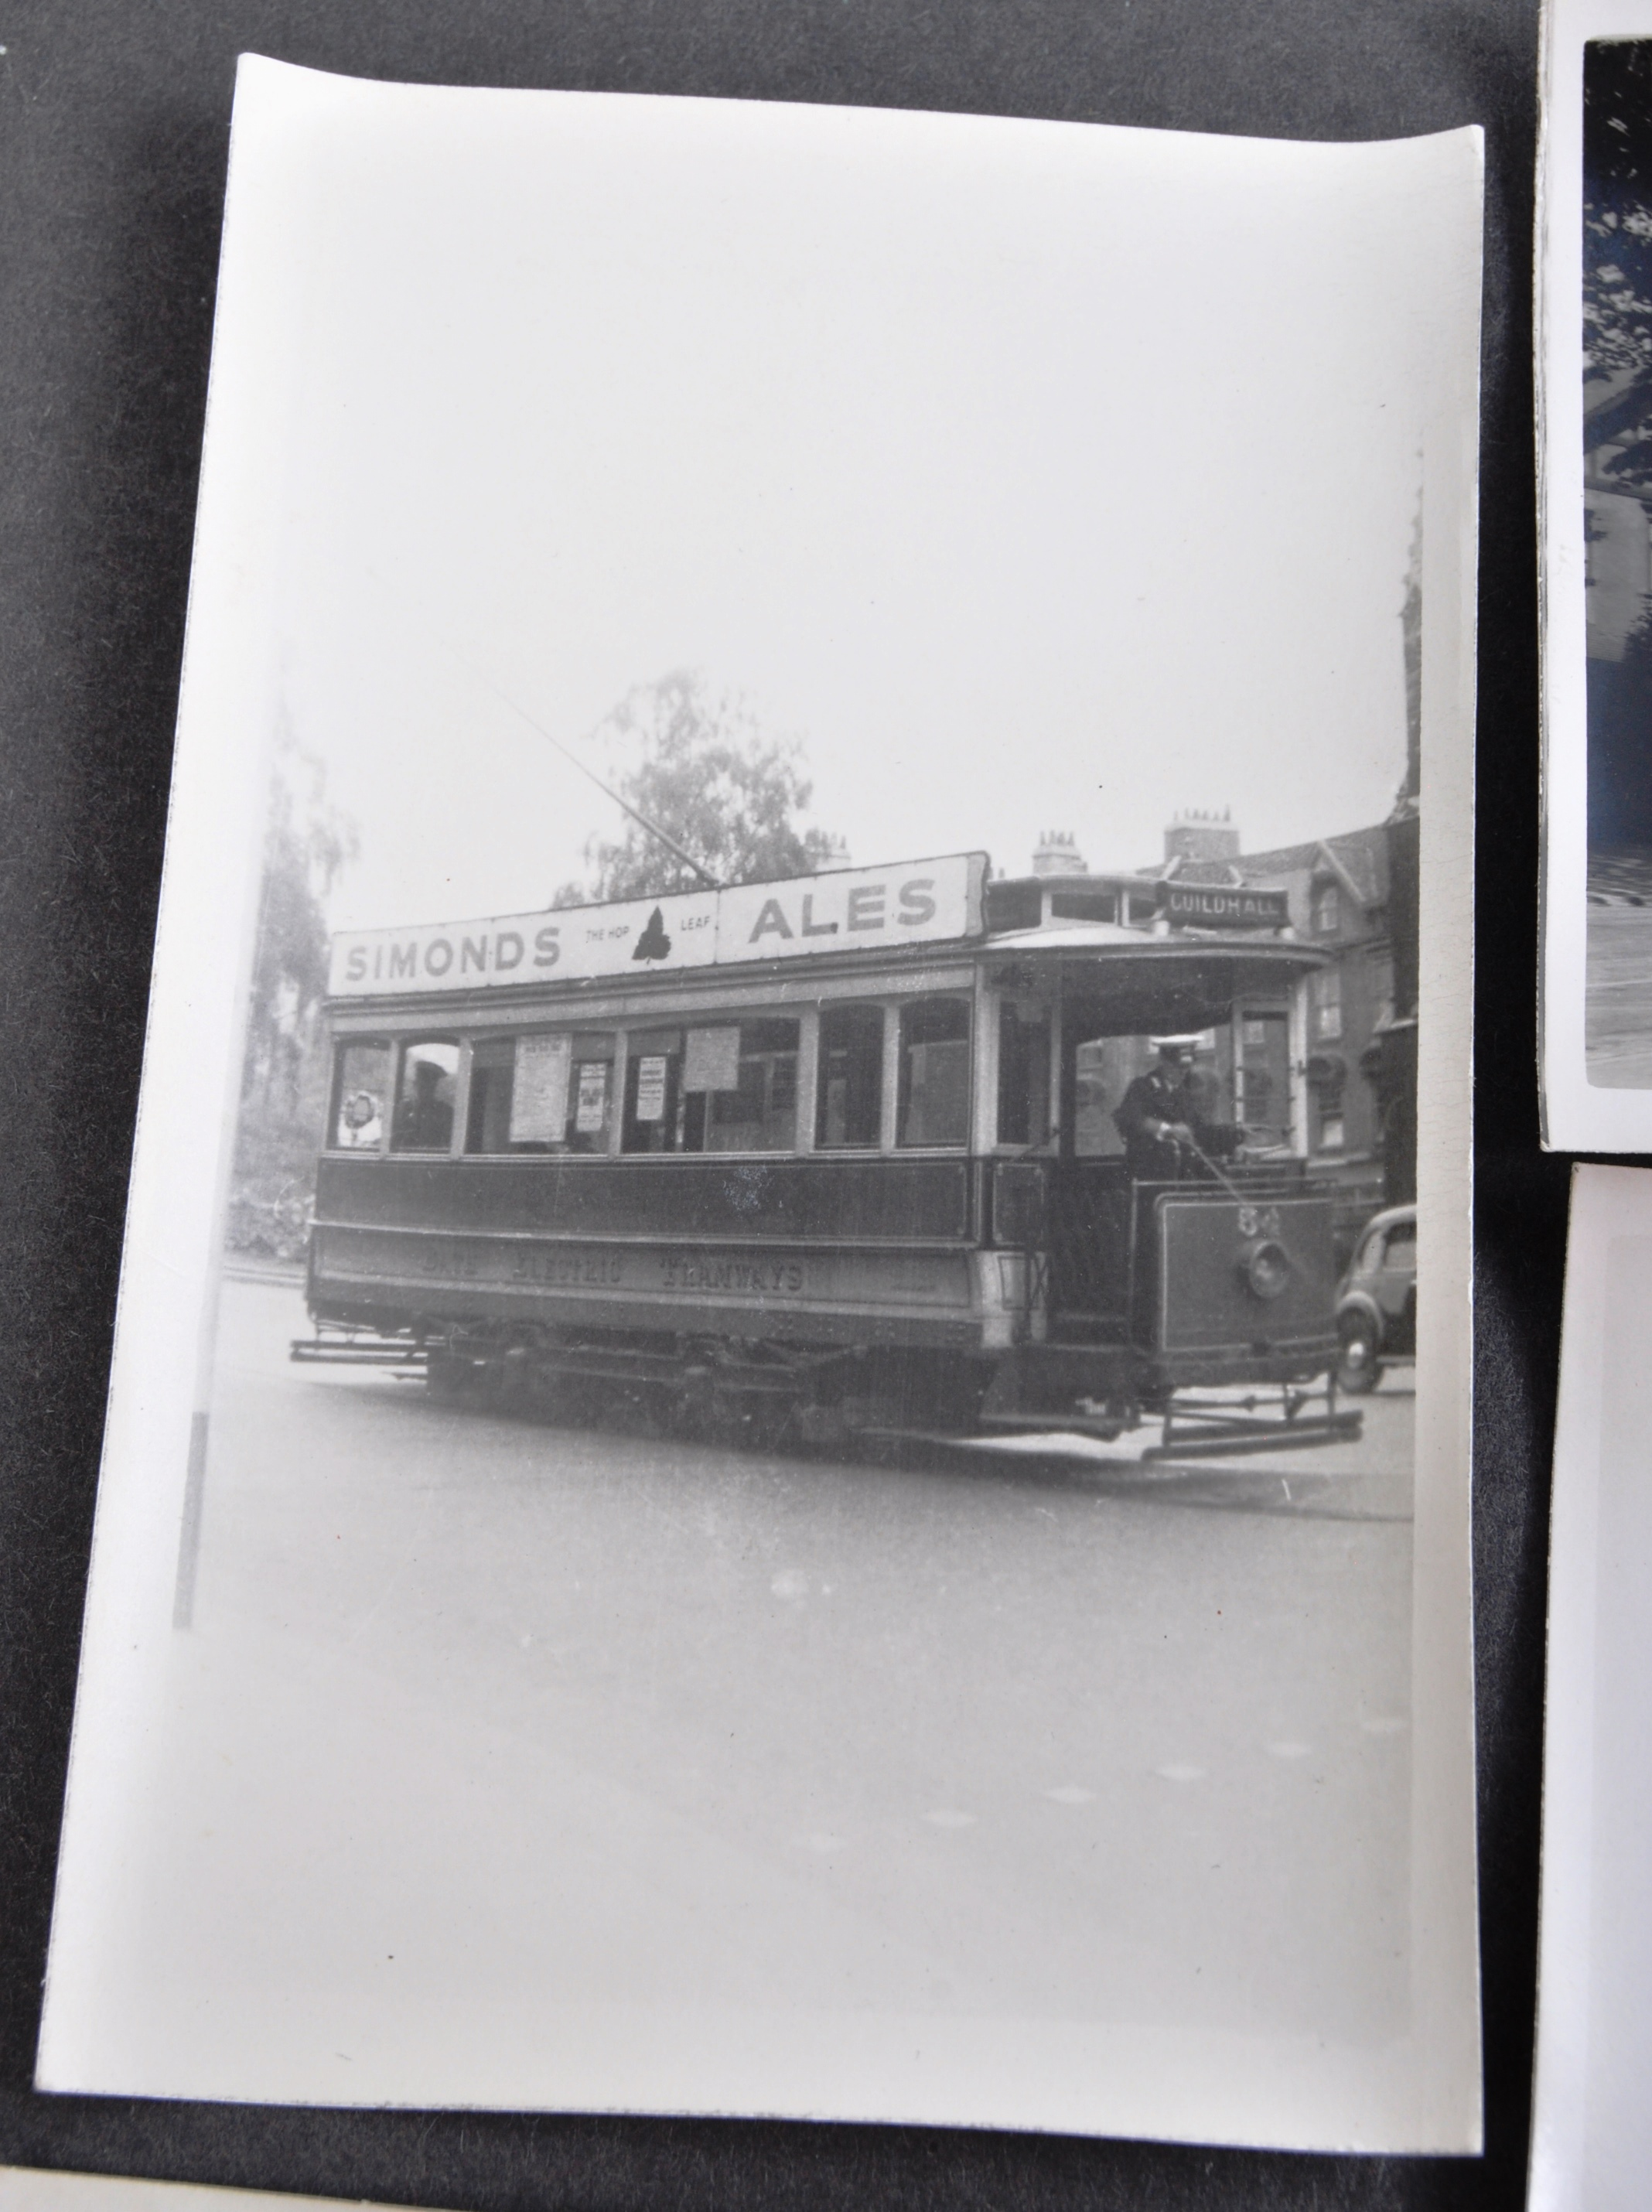 TRAMS & TROLLEY BUSES - LARGE COLLECTION OF BLACK AND WHITE PHOTOS - Image 8 of 9